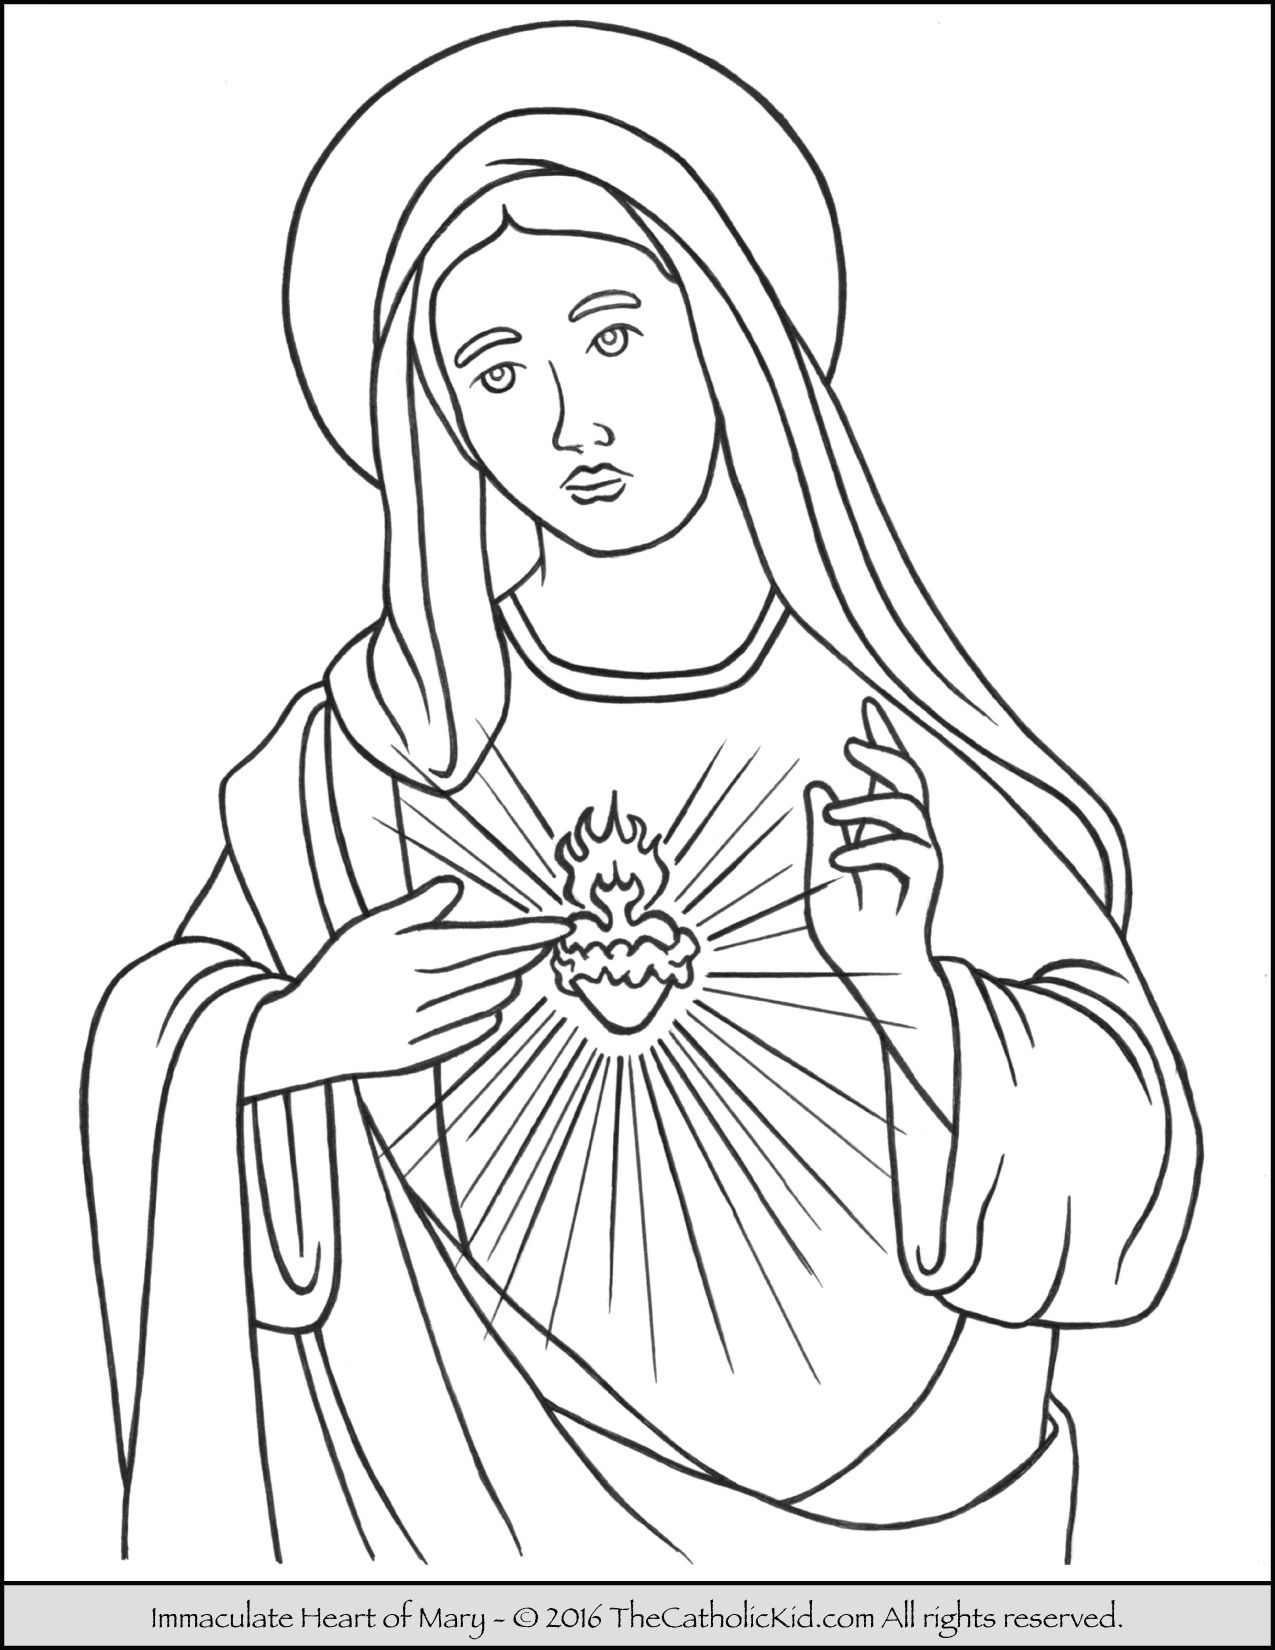 immaculate heart of mary catholic coloring page catholic